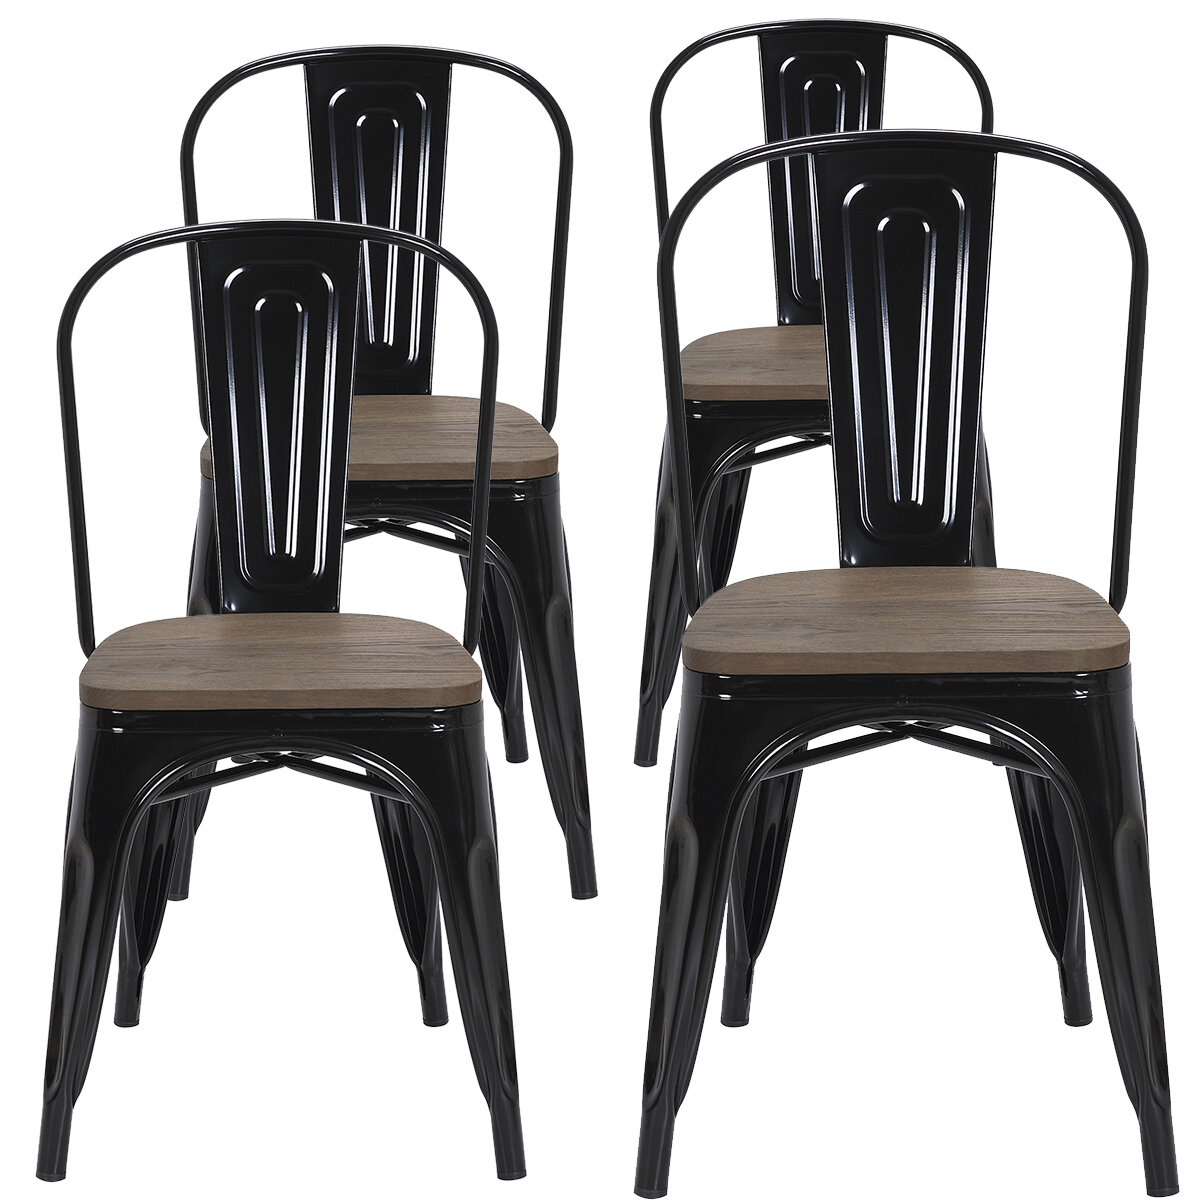 Pleasing Chloe Dining Chair Caraccident5 Cool Chair Designs And Ideas Caraccident5Info